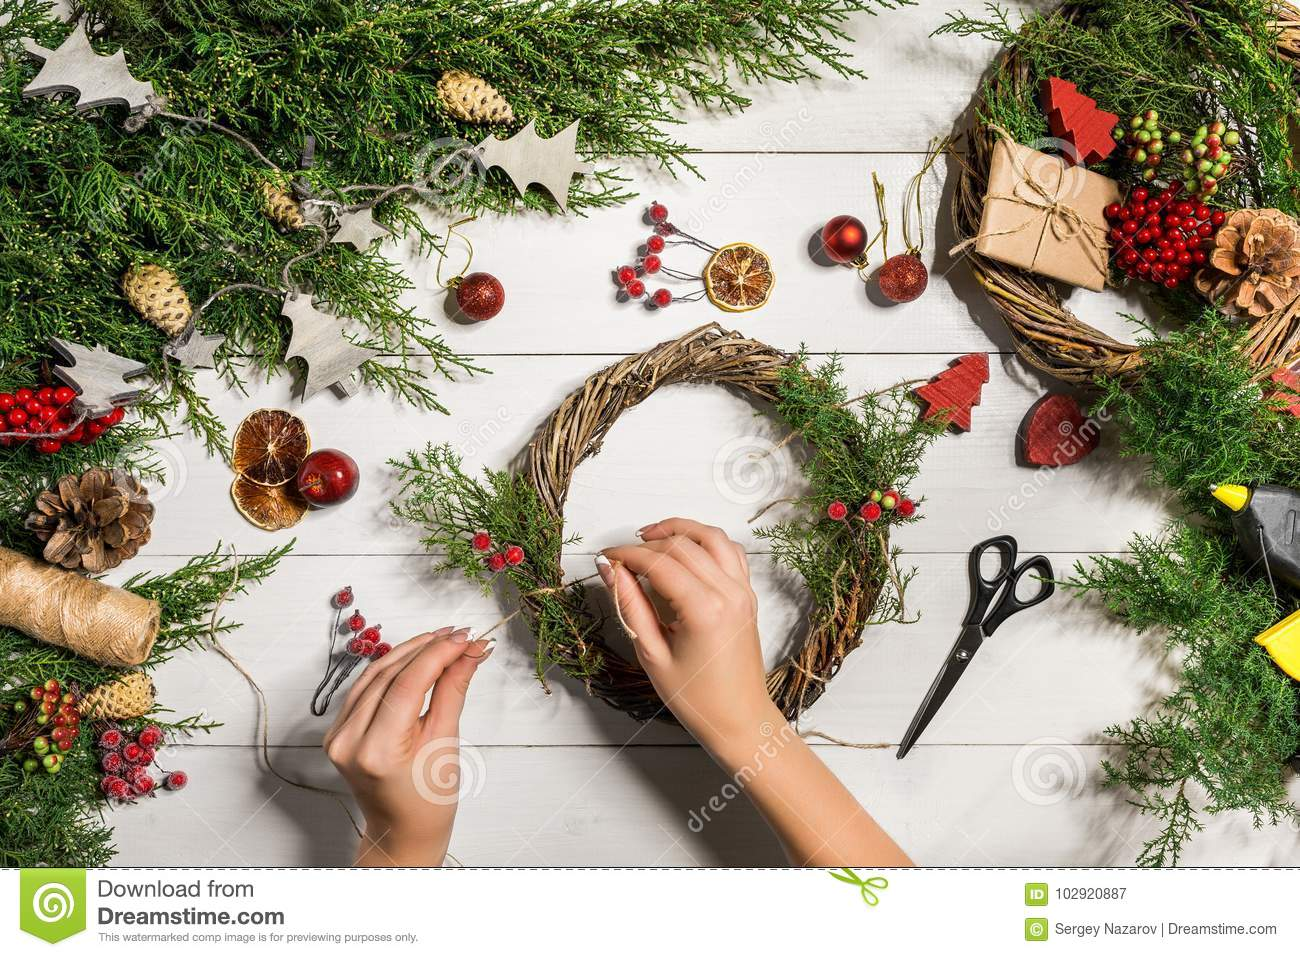 Christmas handmade diy background. Making craft xmas wreath and ornaments. Top view of white wooden table with female